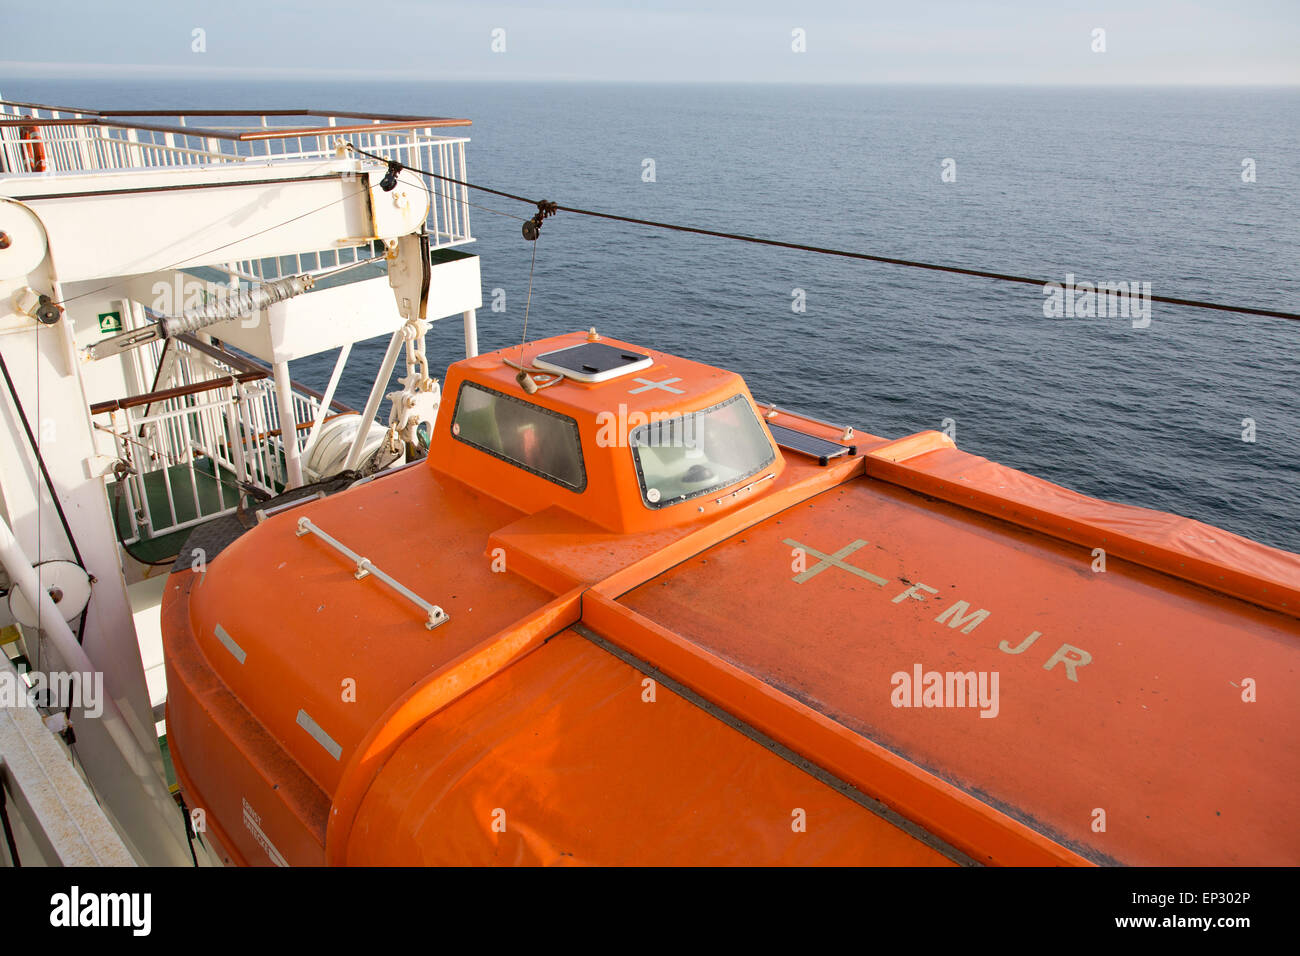 An orange lifeboat attached to the side of a cross channel ferry with the English Channel behind. - Stock Image